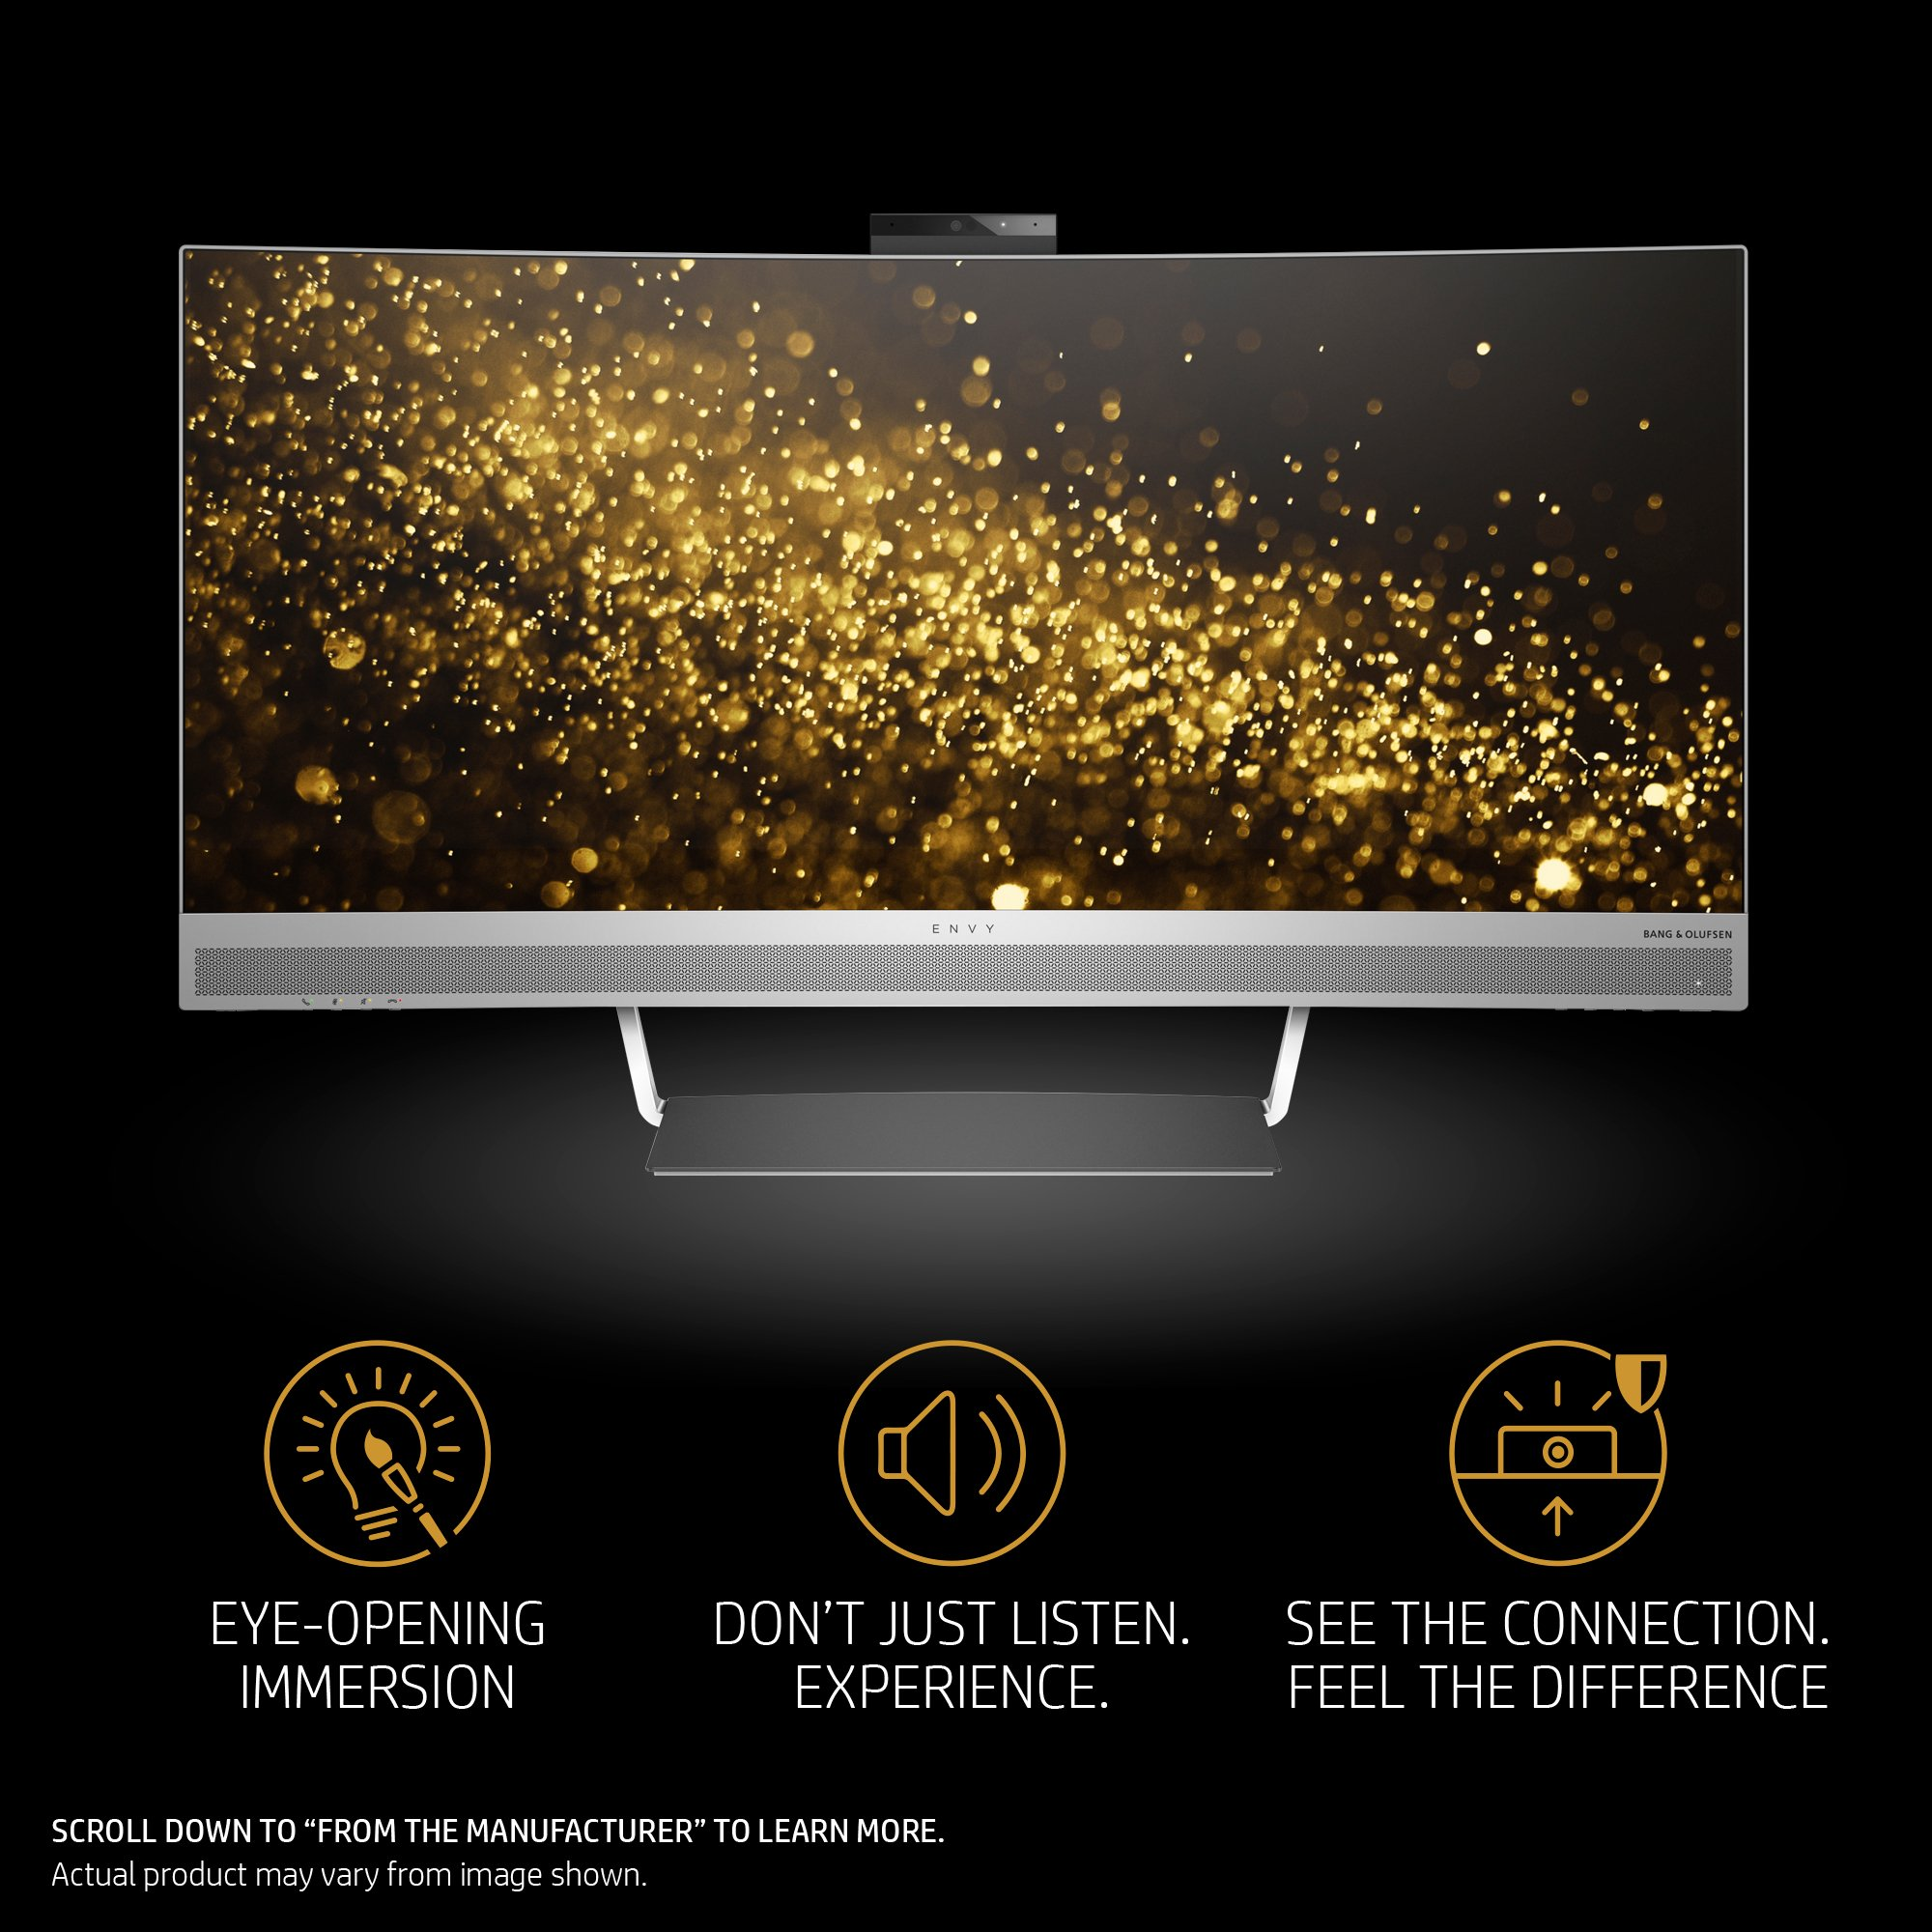 HP ENVY 34-inch Ultra WQHD Curved Monitor with AMD Freesync Technology, Webcam and Audio by Bang & Olufsen (Black/Silver) by HP (Image #4)